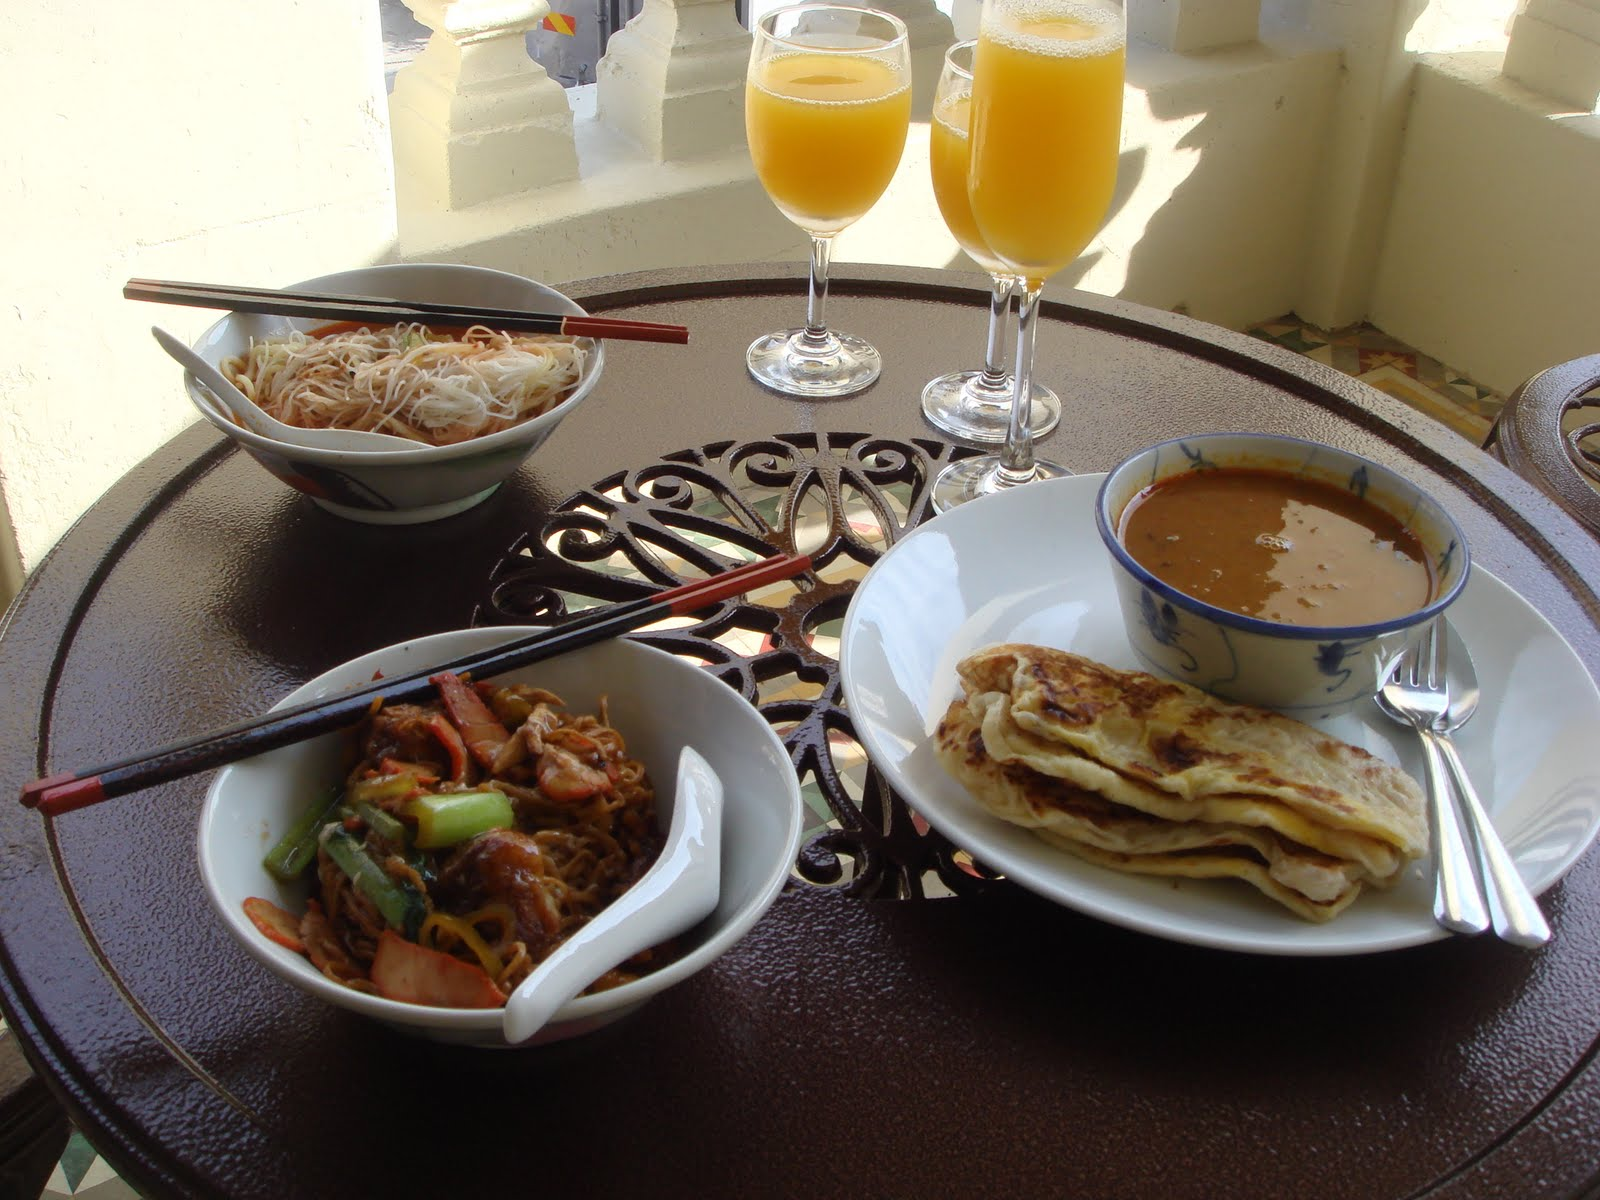 A mixture of Indian food (naan and curry) and Chinese food (noodles) for breakfast